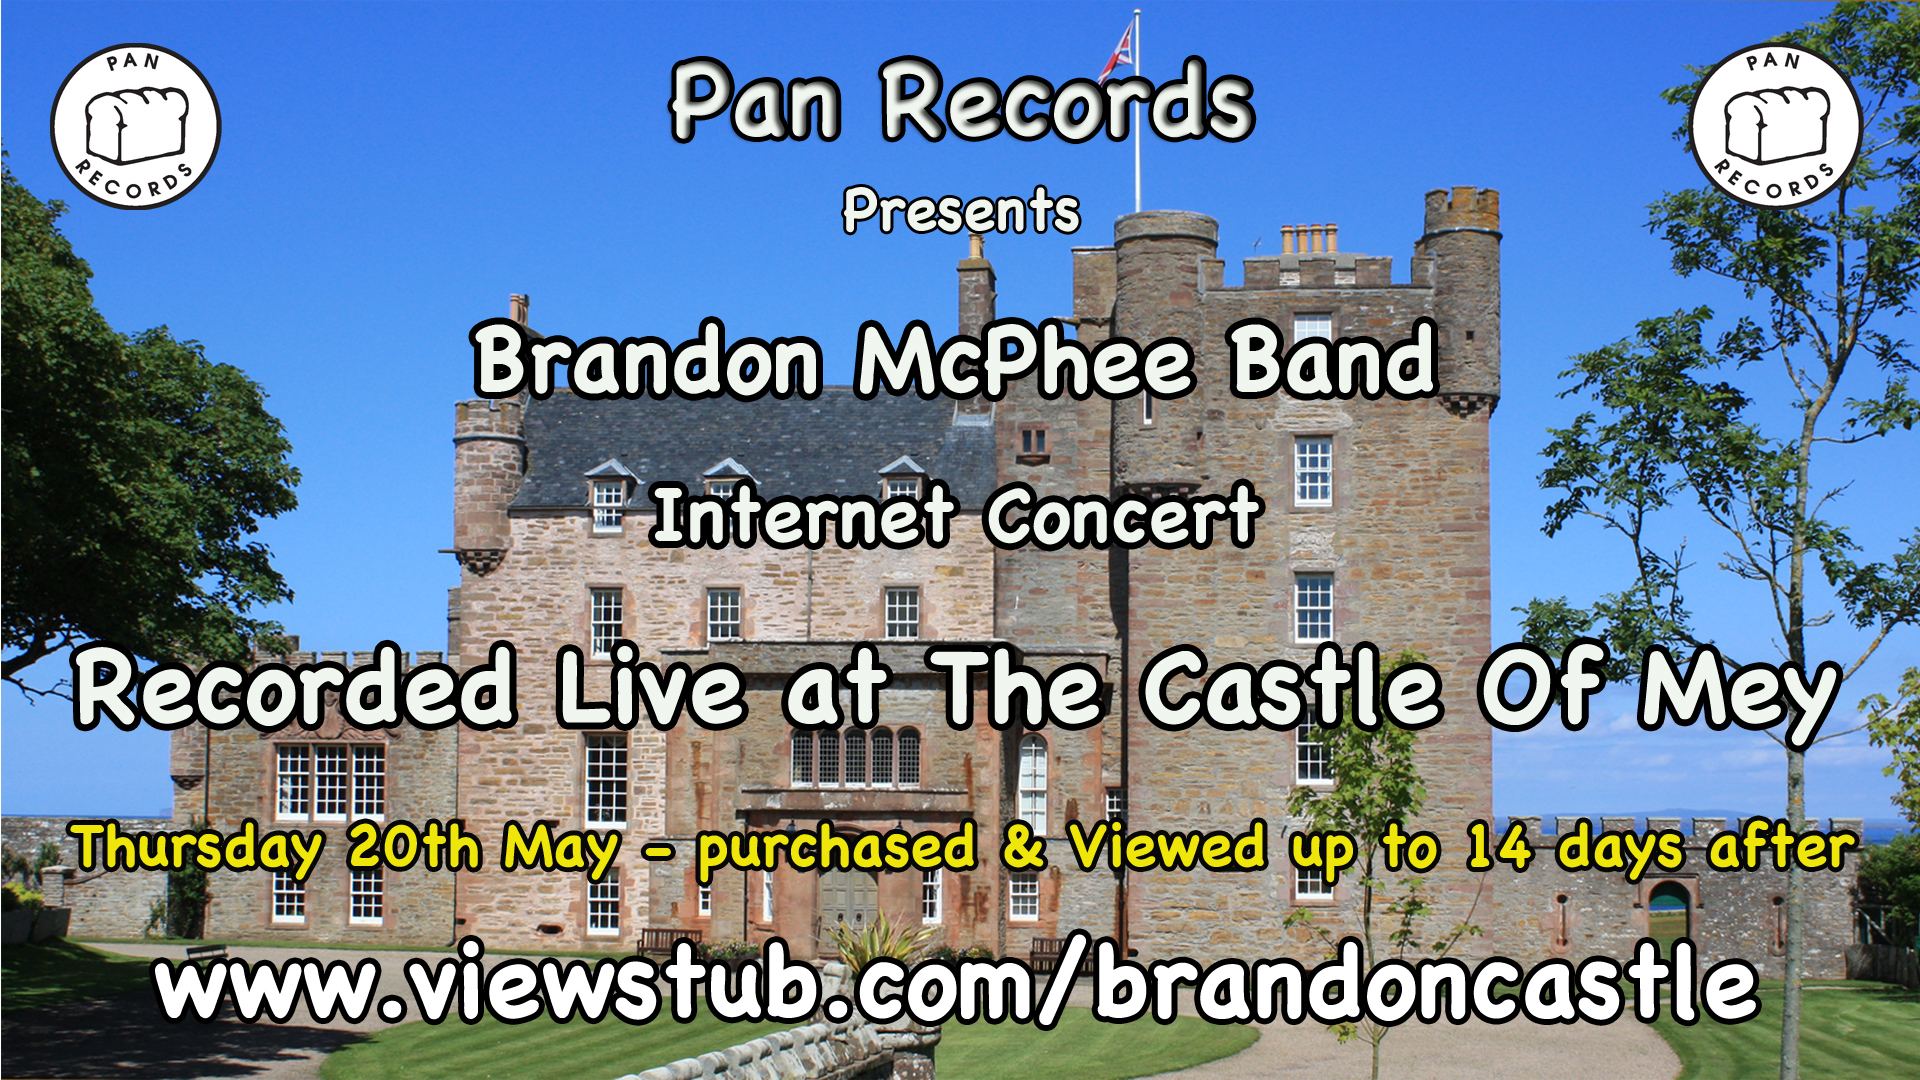 Photo for Brandon Mcphee Band at the Royal Castle of Mey, Caithness on ViewStub